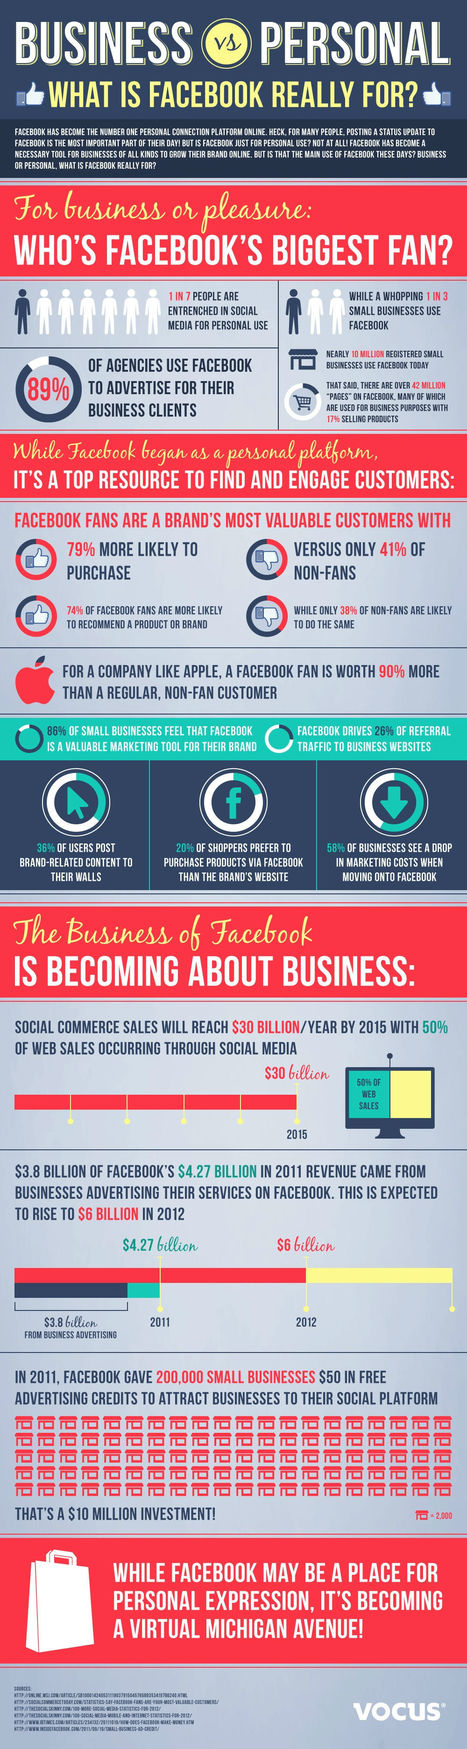 Why Sales on Social Media Will Be Huge By 2015 [INFOGRAPHIC] | Online Marketing with Tech | Scoop.it